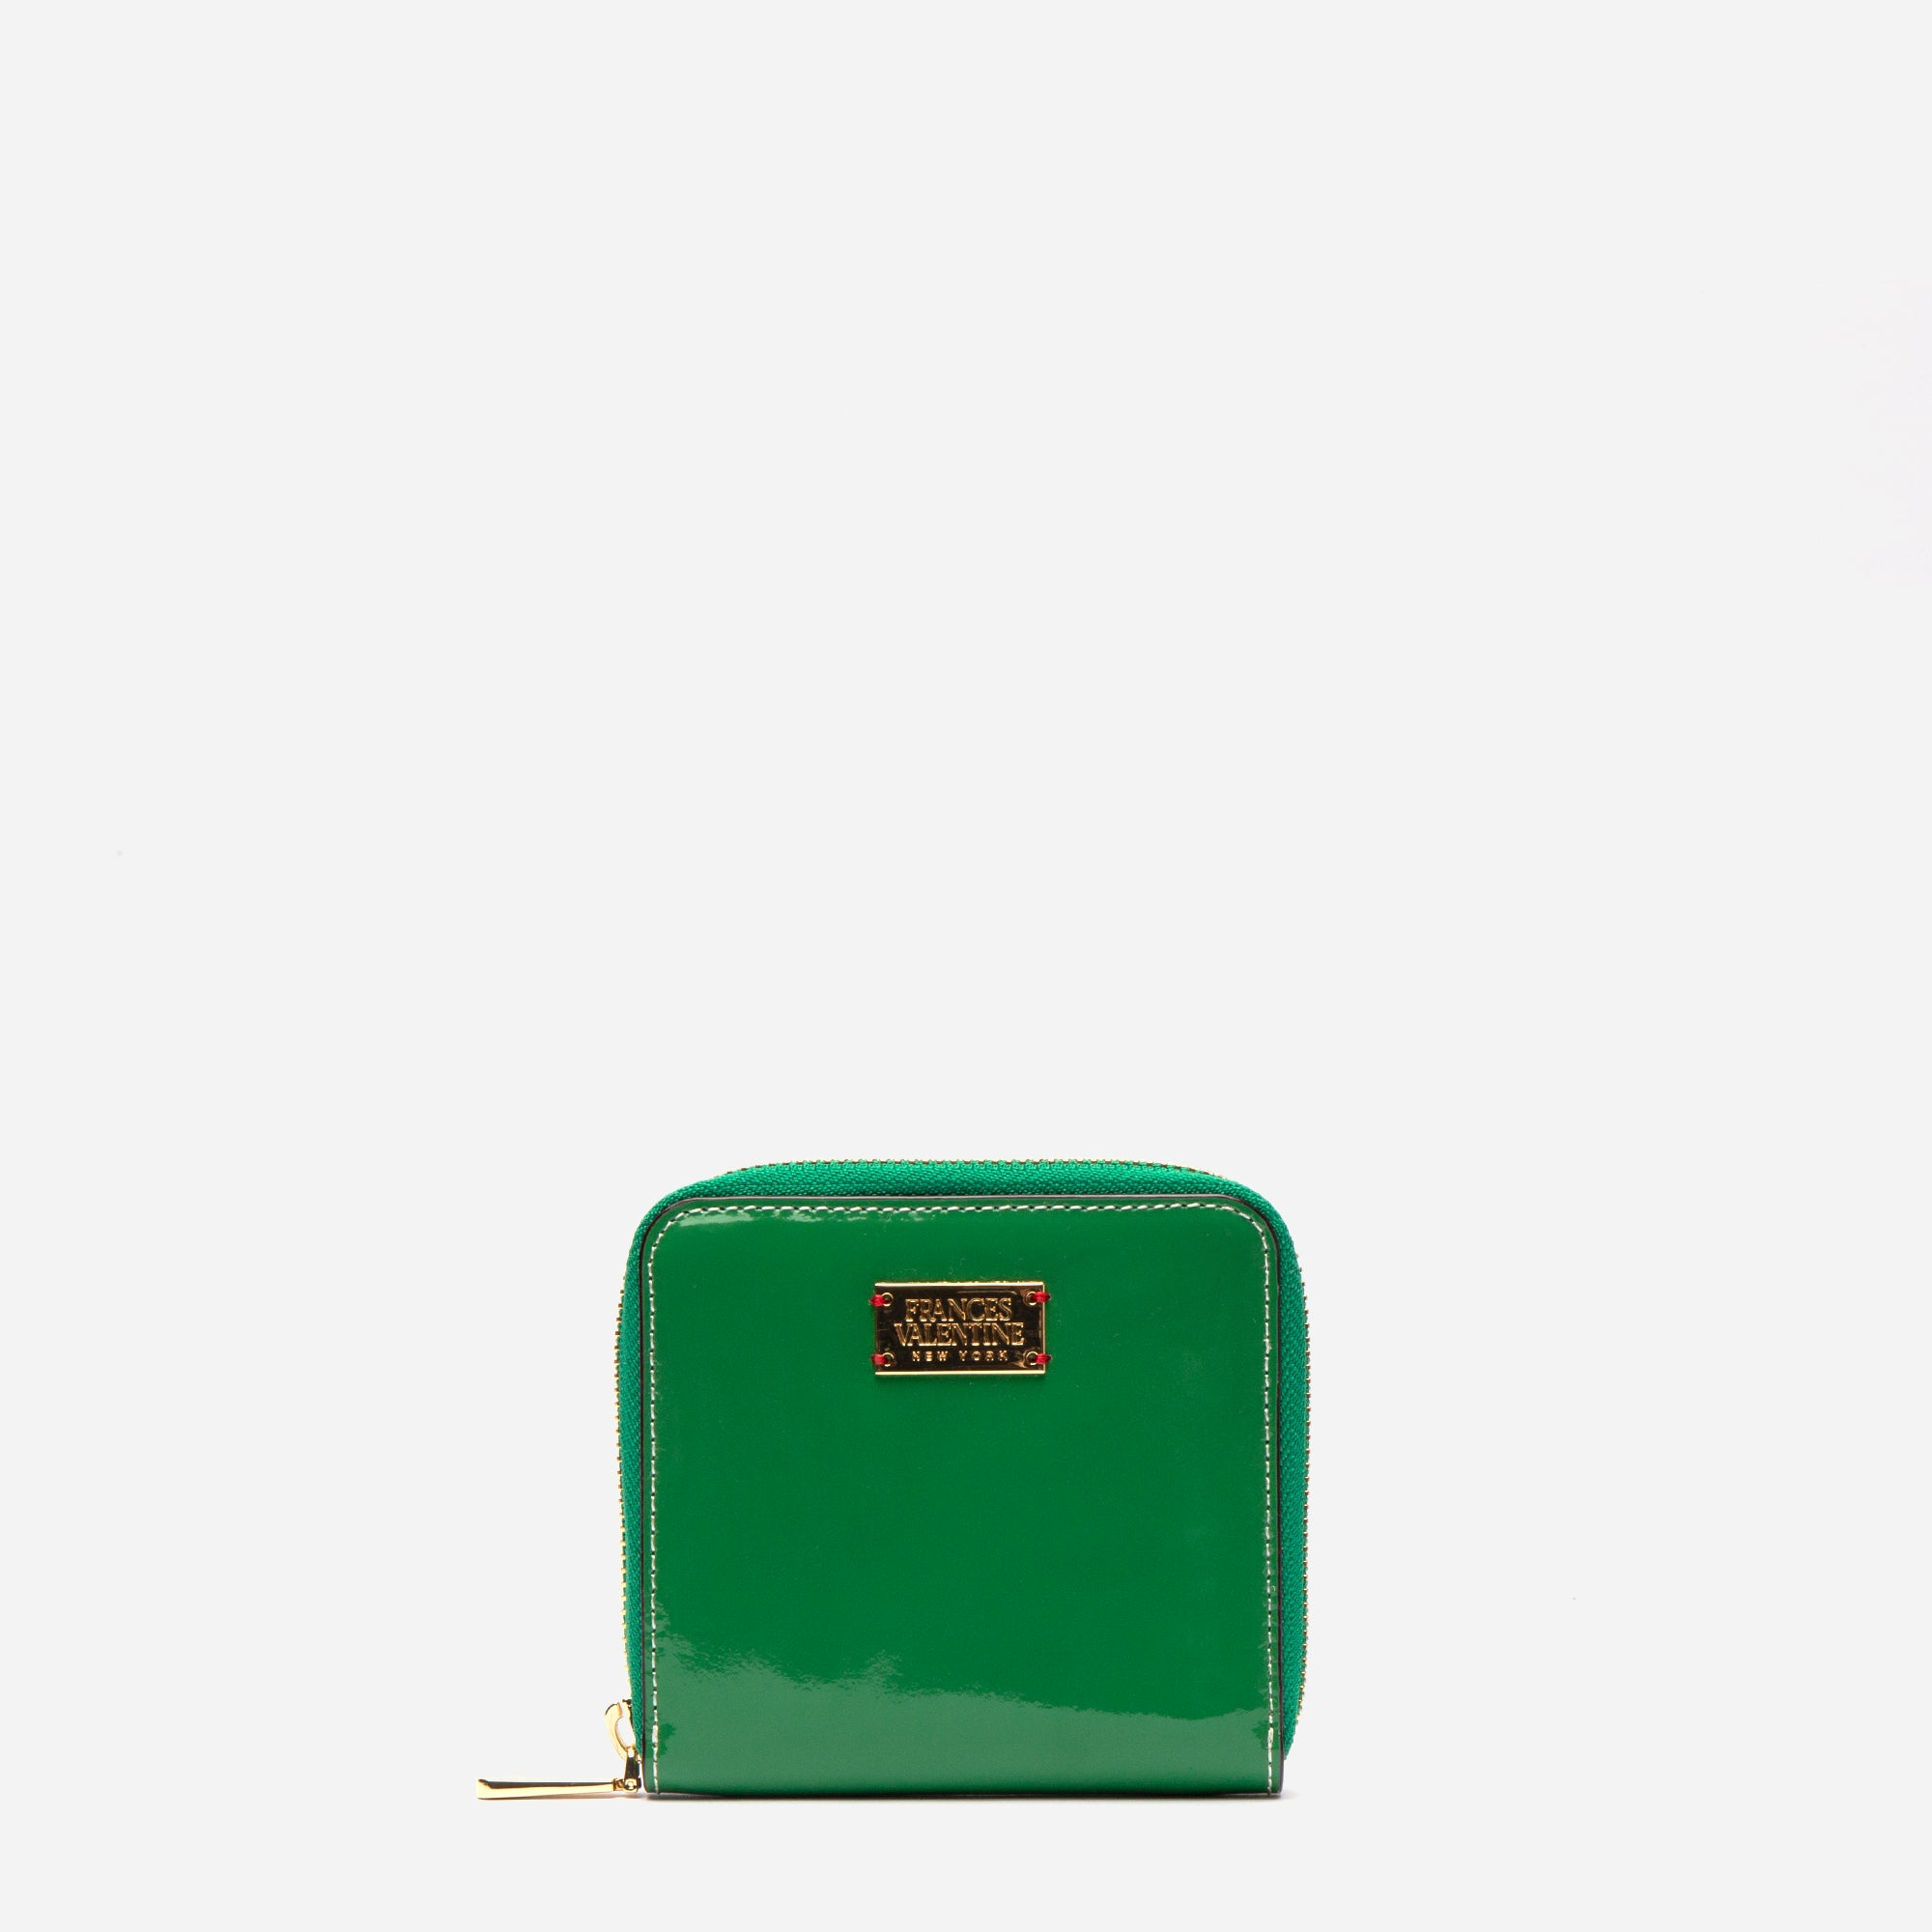 Roosevelt Small Zip Wallet Soft Patent Green Yellow